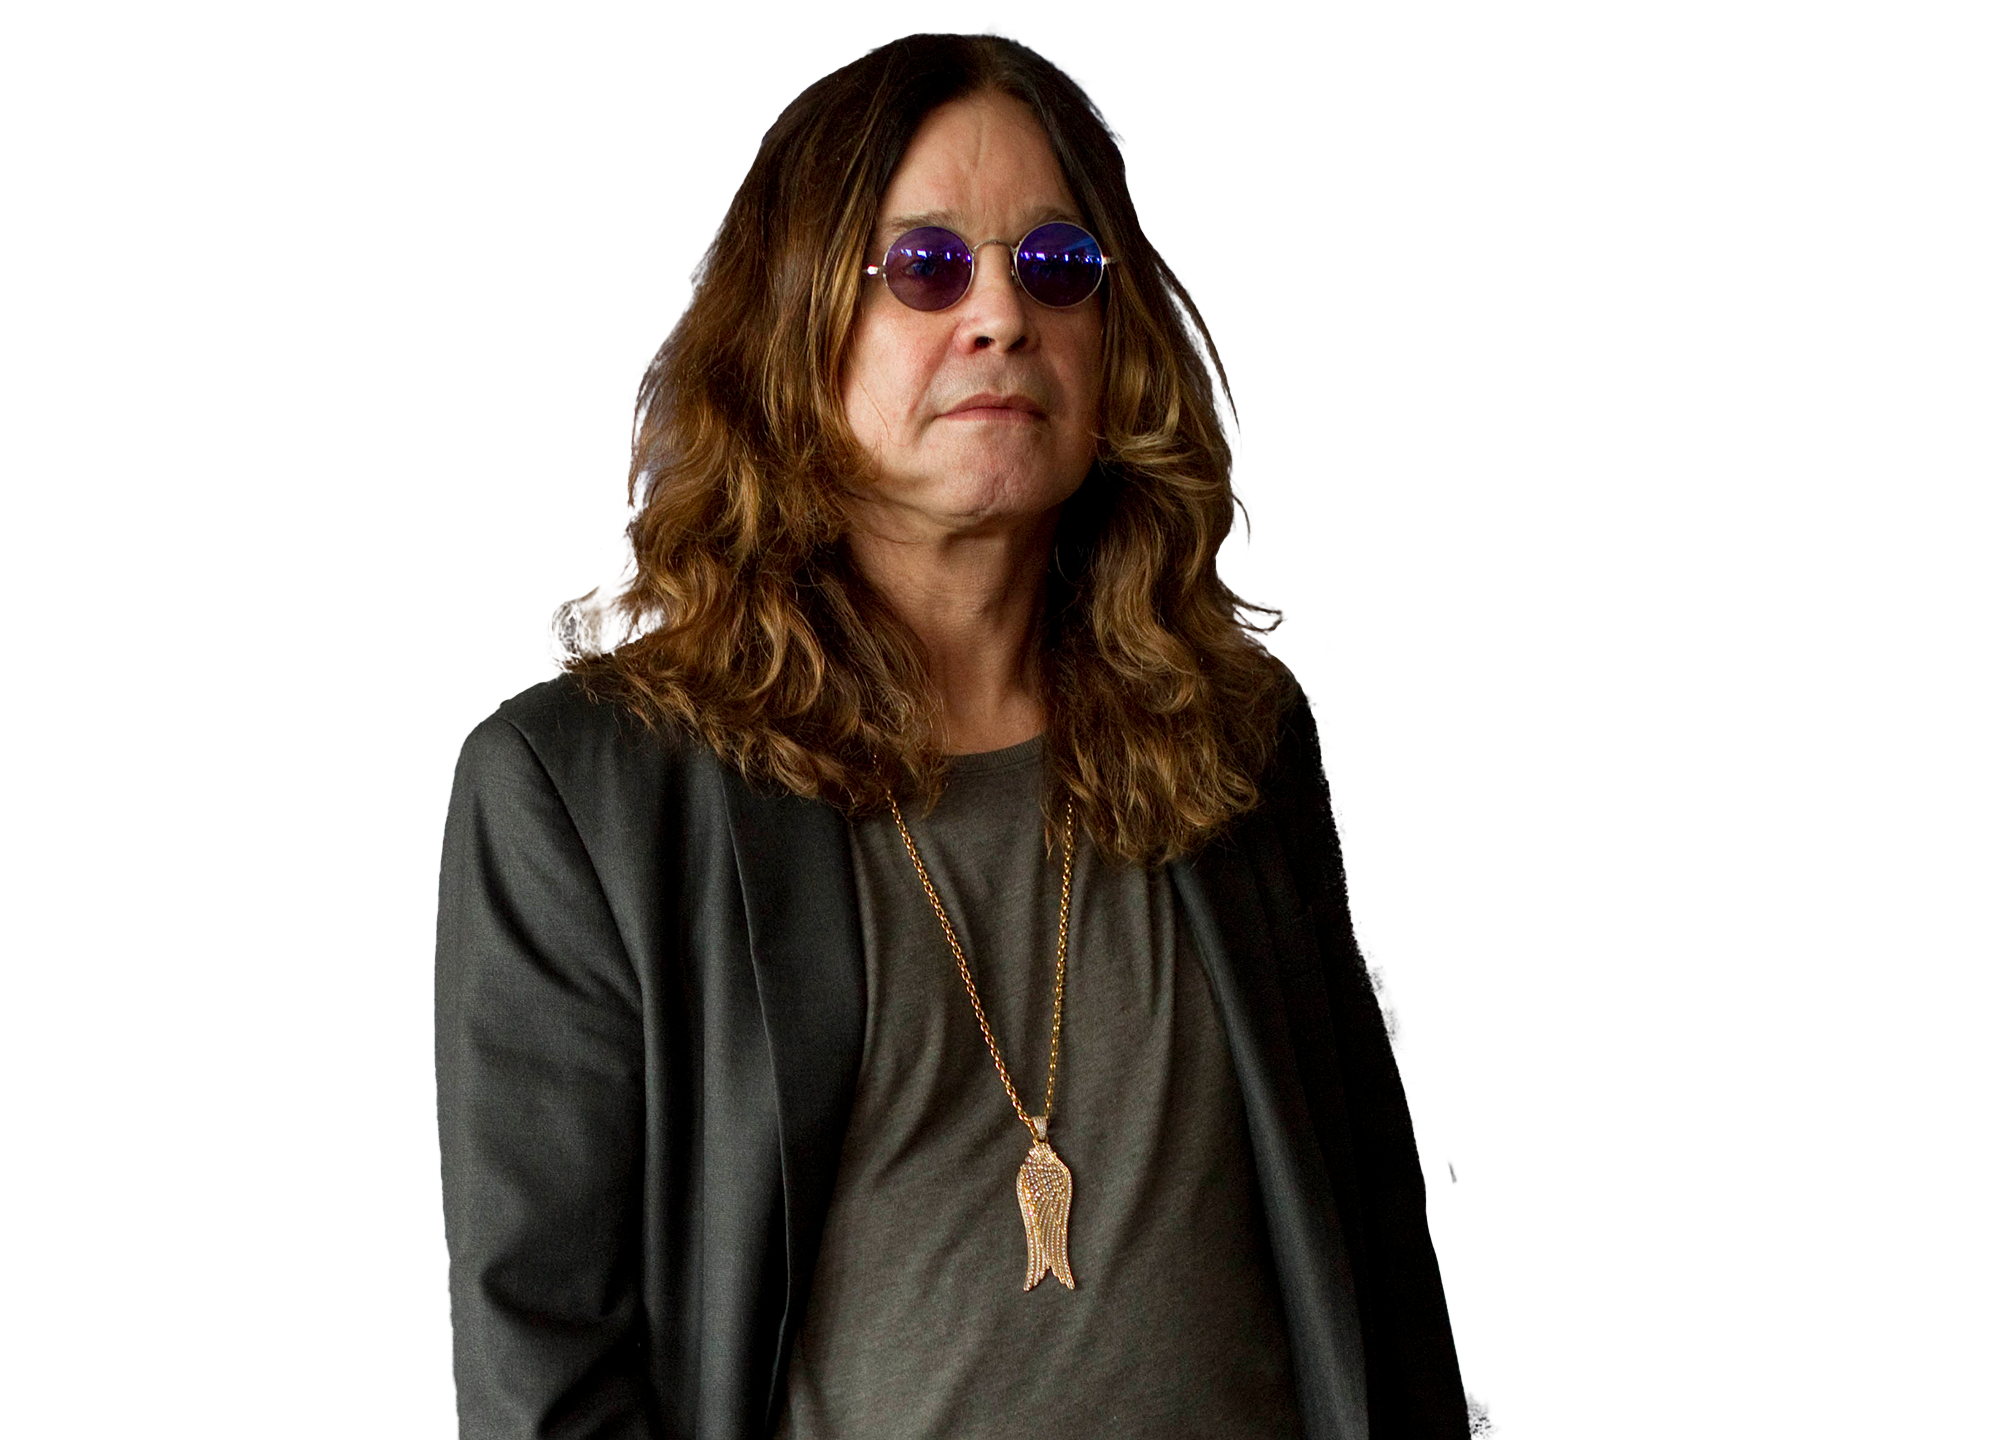 Ozzy Osbourne Cancels Entire 2020 Tour Including Kc Sprint Center Show Amid Health Concerns Ksnf Kode Fourstateshomepage Com